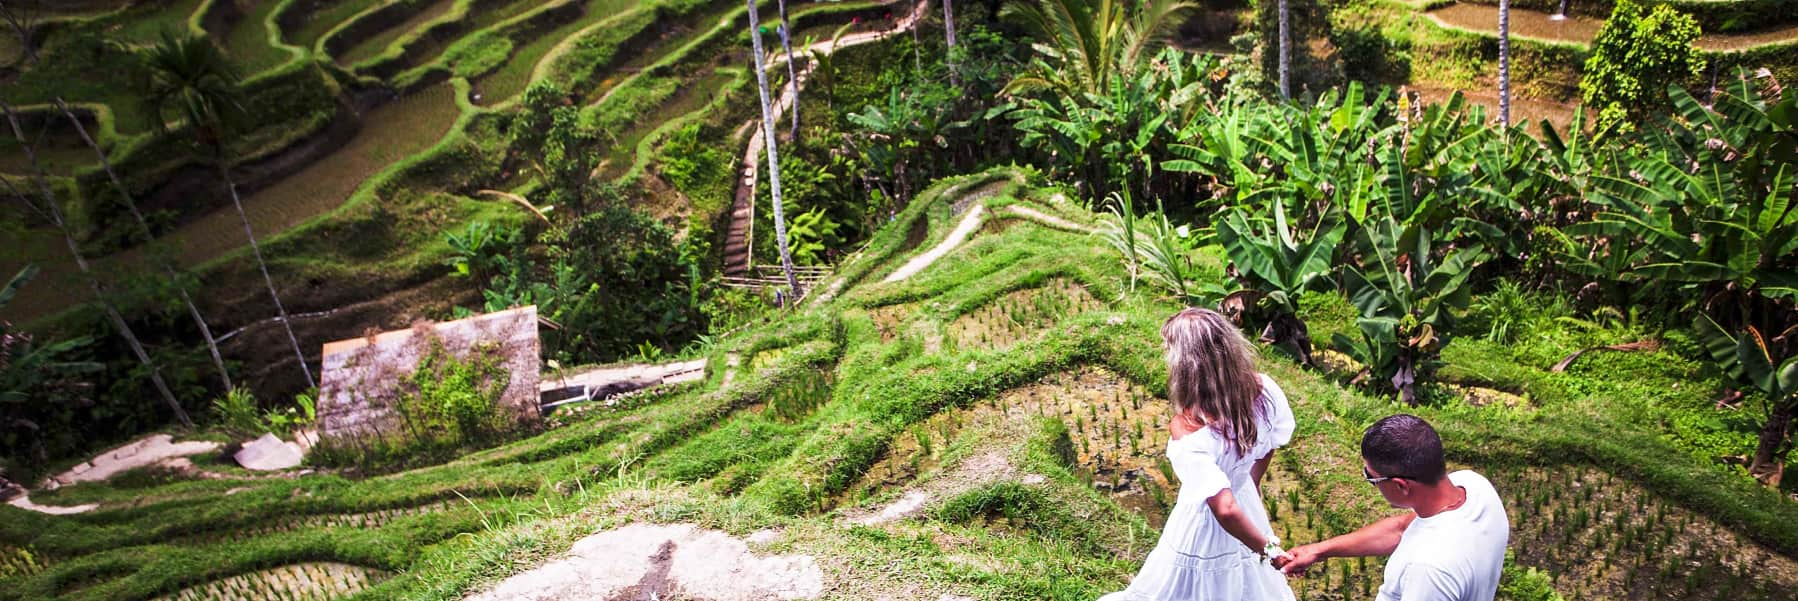 Ubud Small Group Tour: Monkey Forest, Tegalalang Rice Terraces and more – Full Day gallery